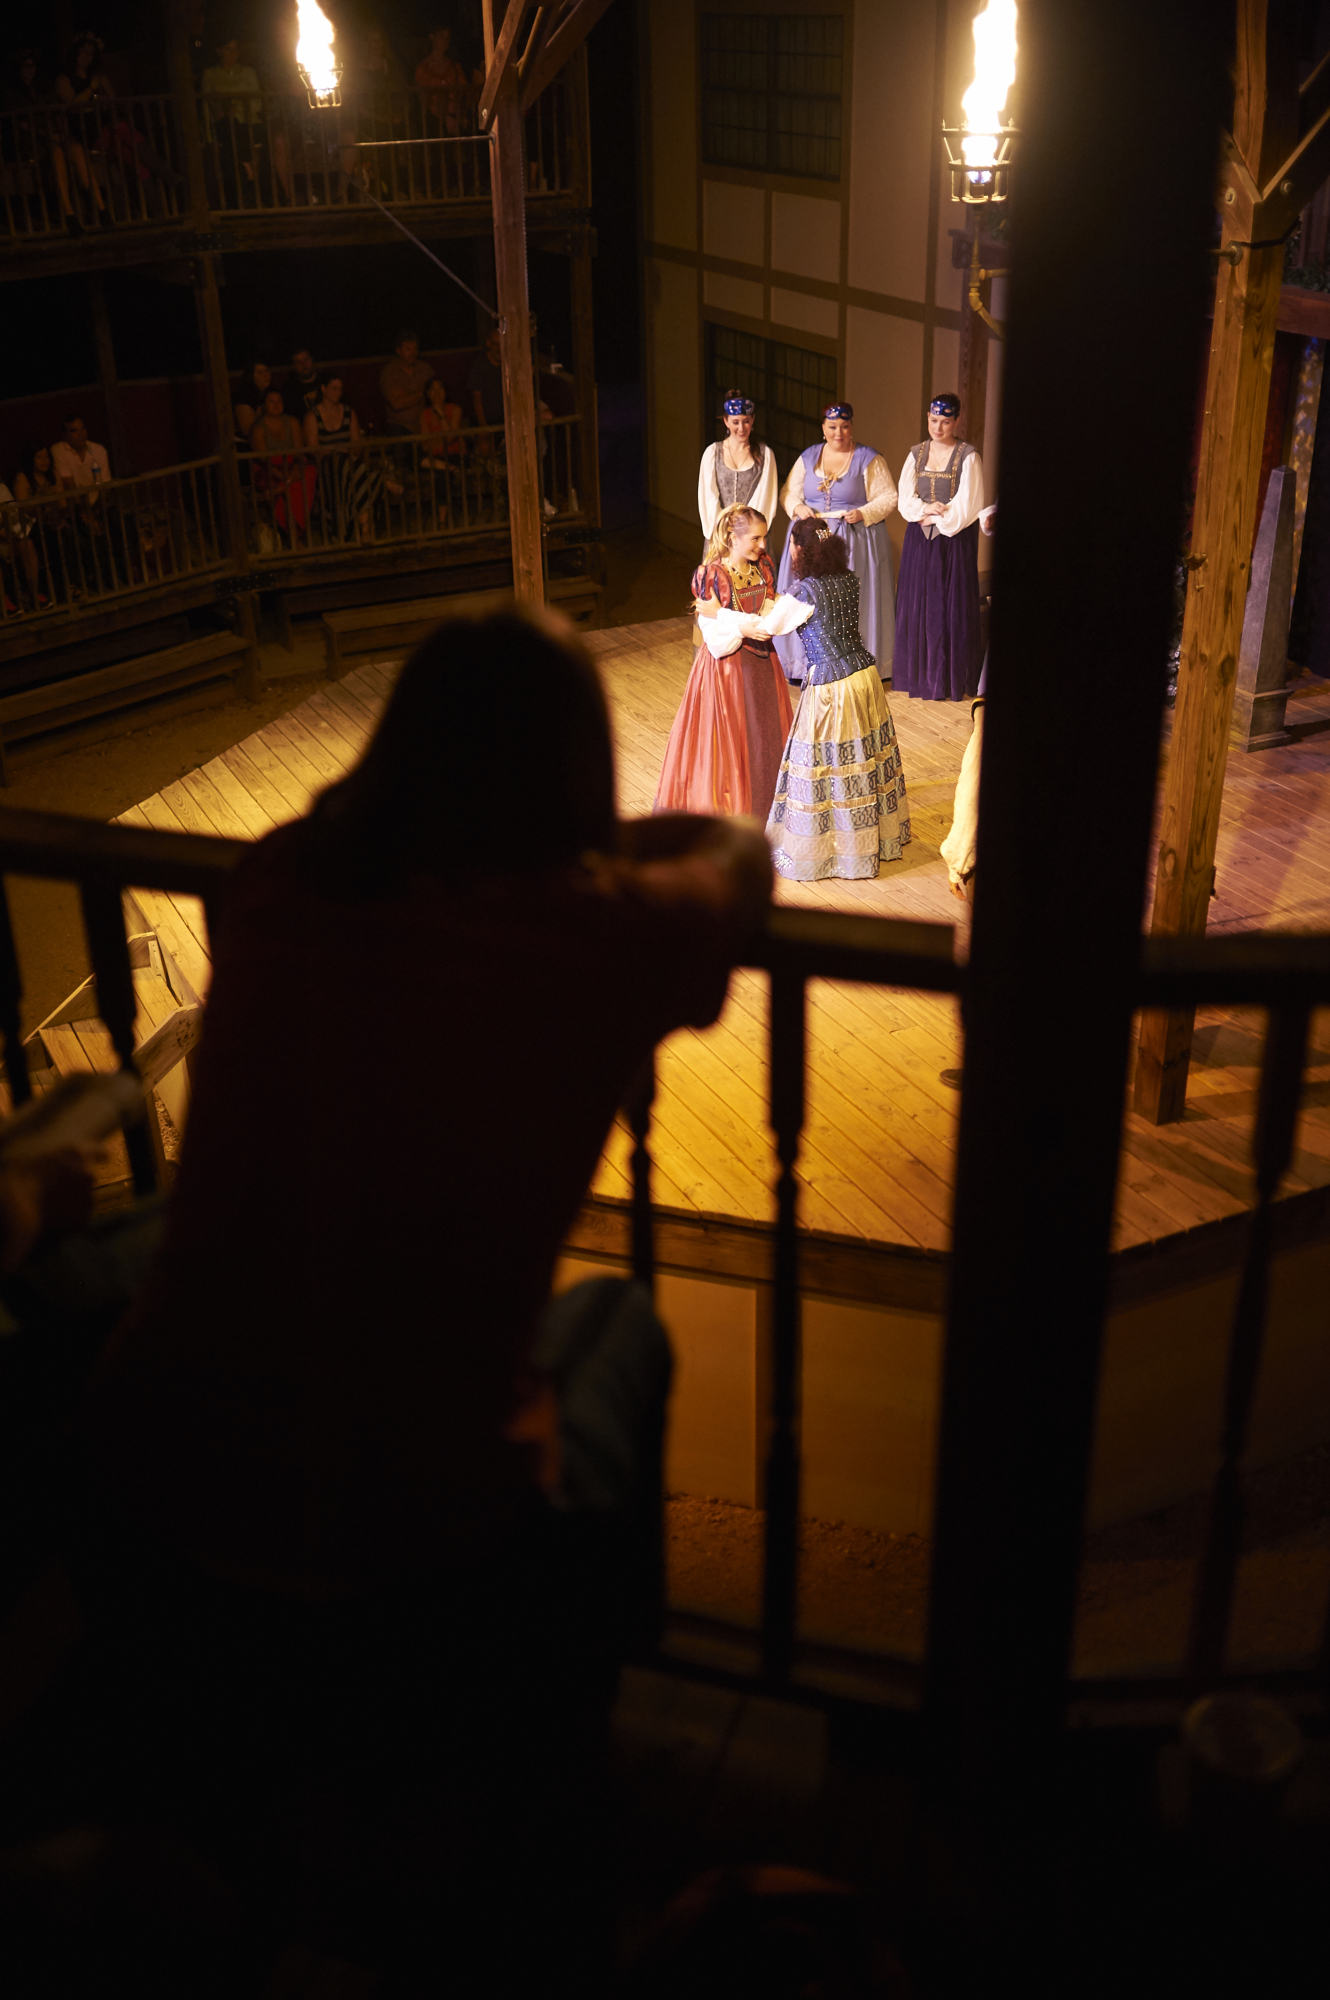 A guest avidly watches Beatrice and Hero on stage at the Curtain Theater in Austin.